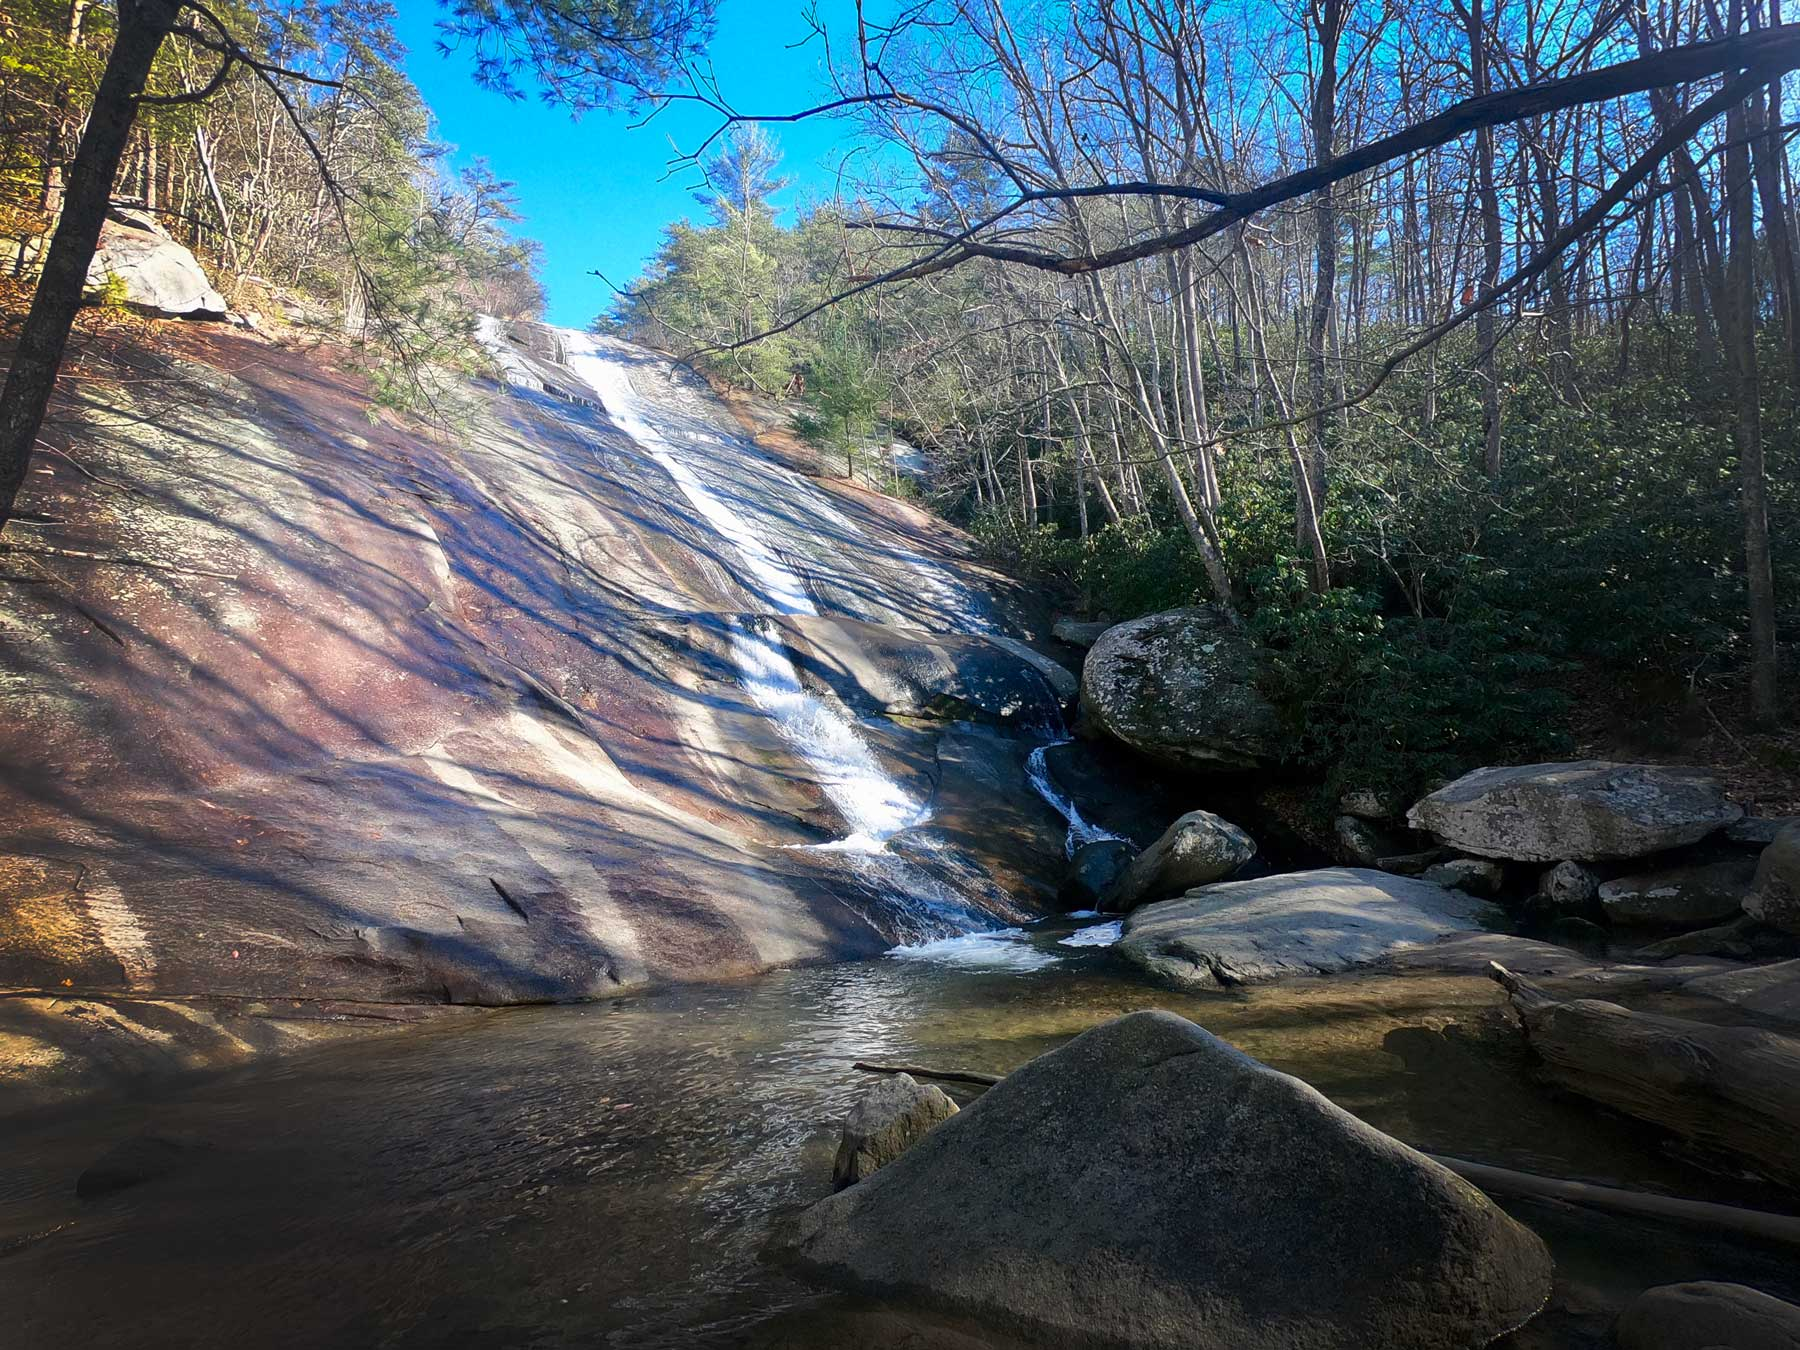 Stone Mountain 200 foot waterfall at Stone Mountain State Park, North Carolina